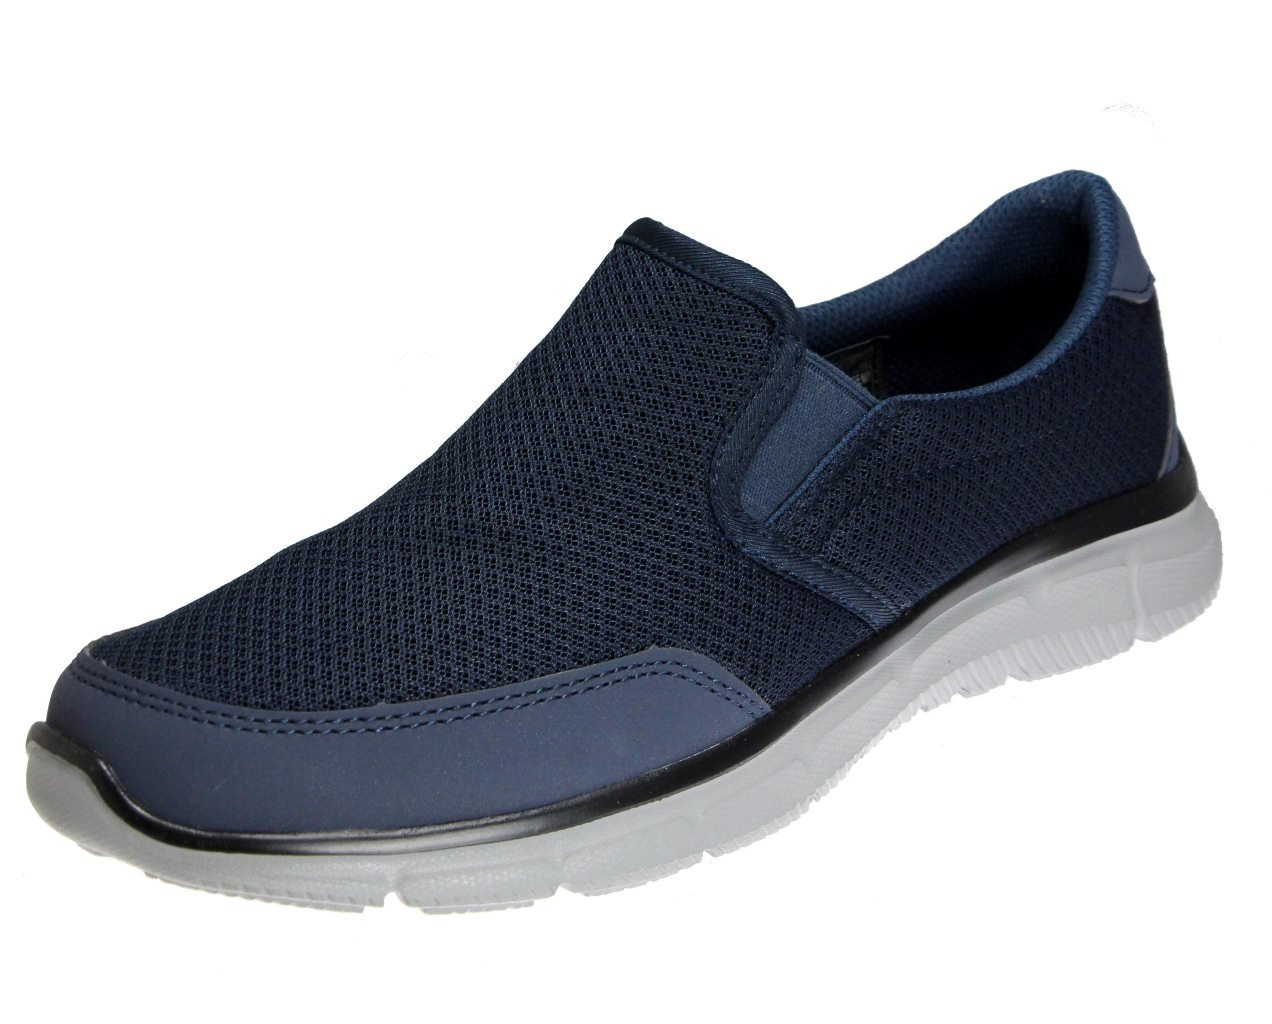 Skechers Men's Verse Robust Reef Slip On, Navy/Charcoal, 10.5 US by Skechers